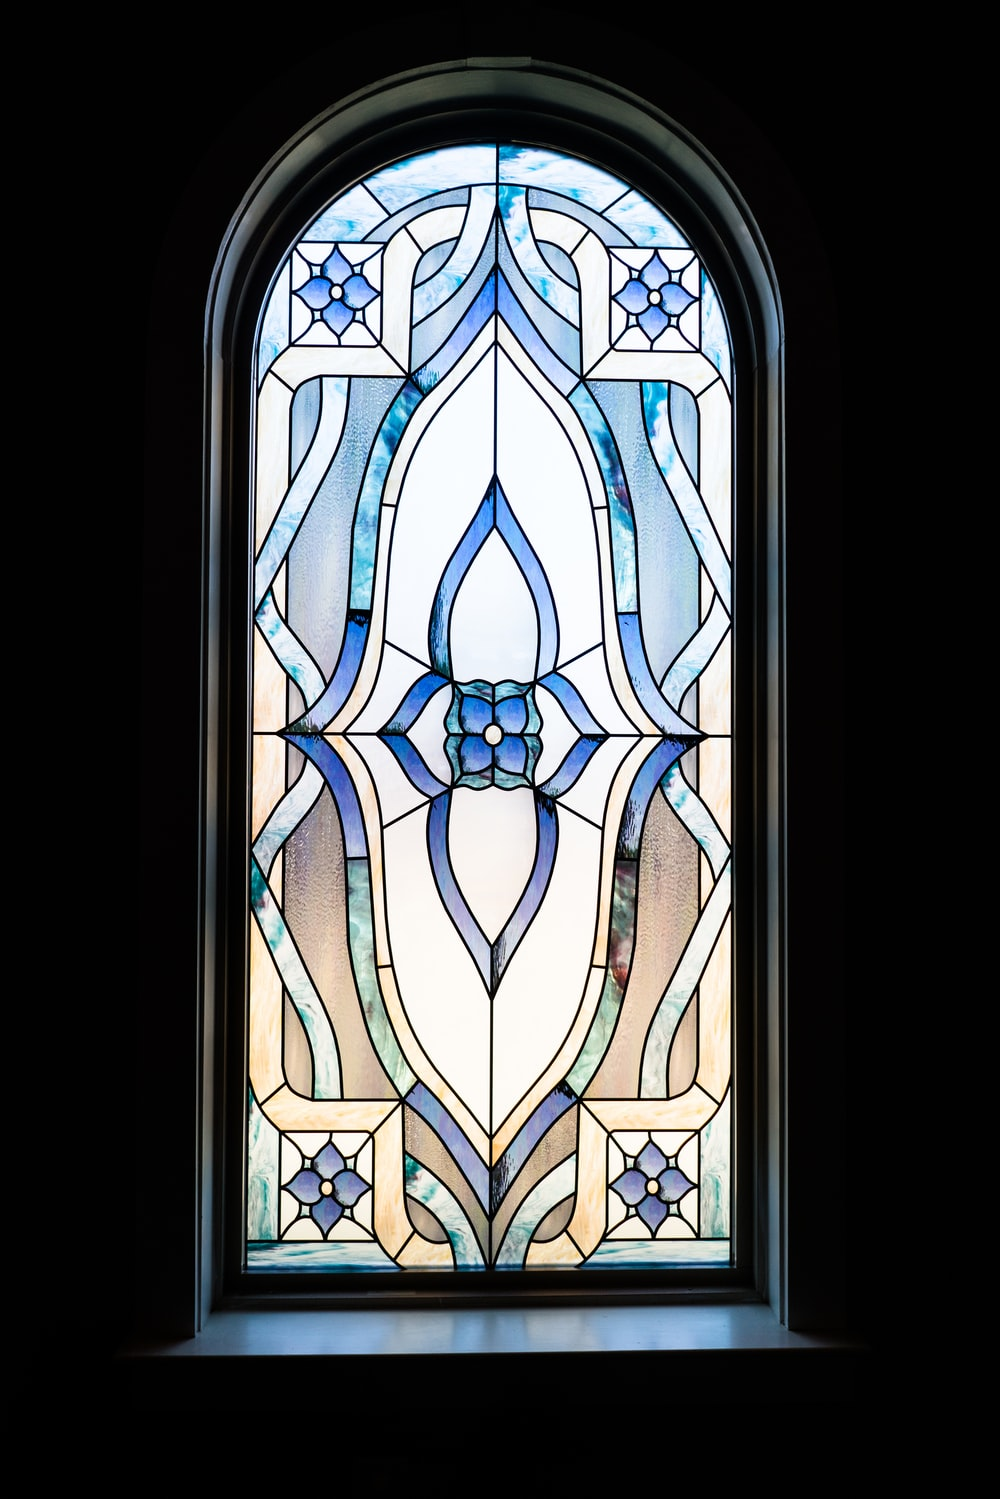 Stain Glass Window Pictures Download Free Images On Unsplash